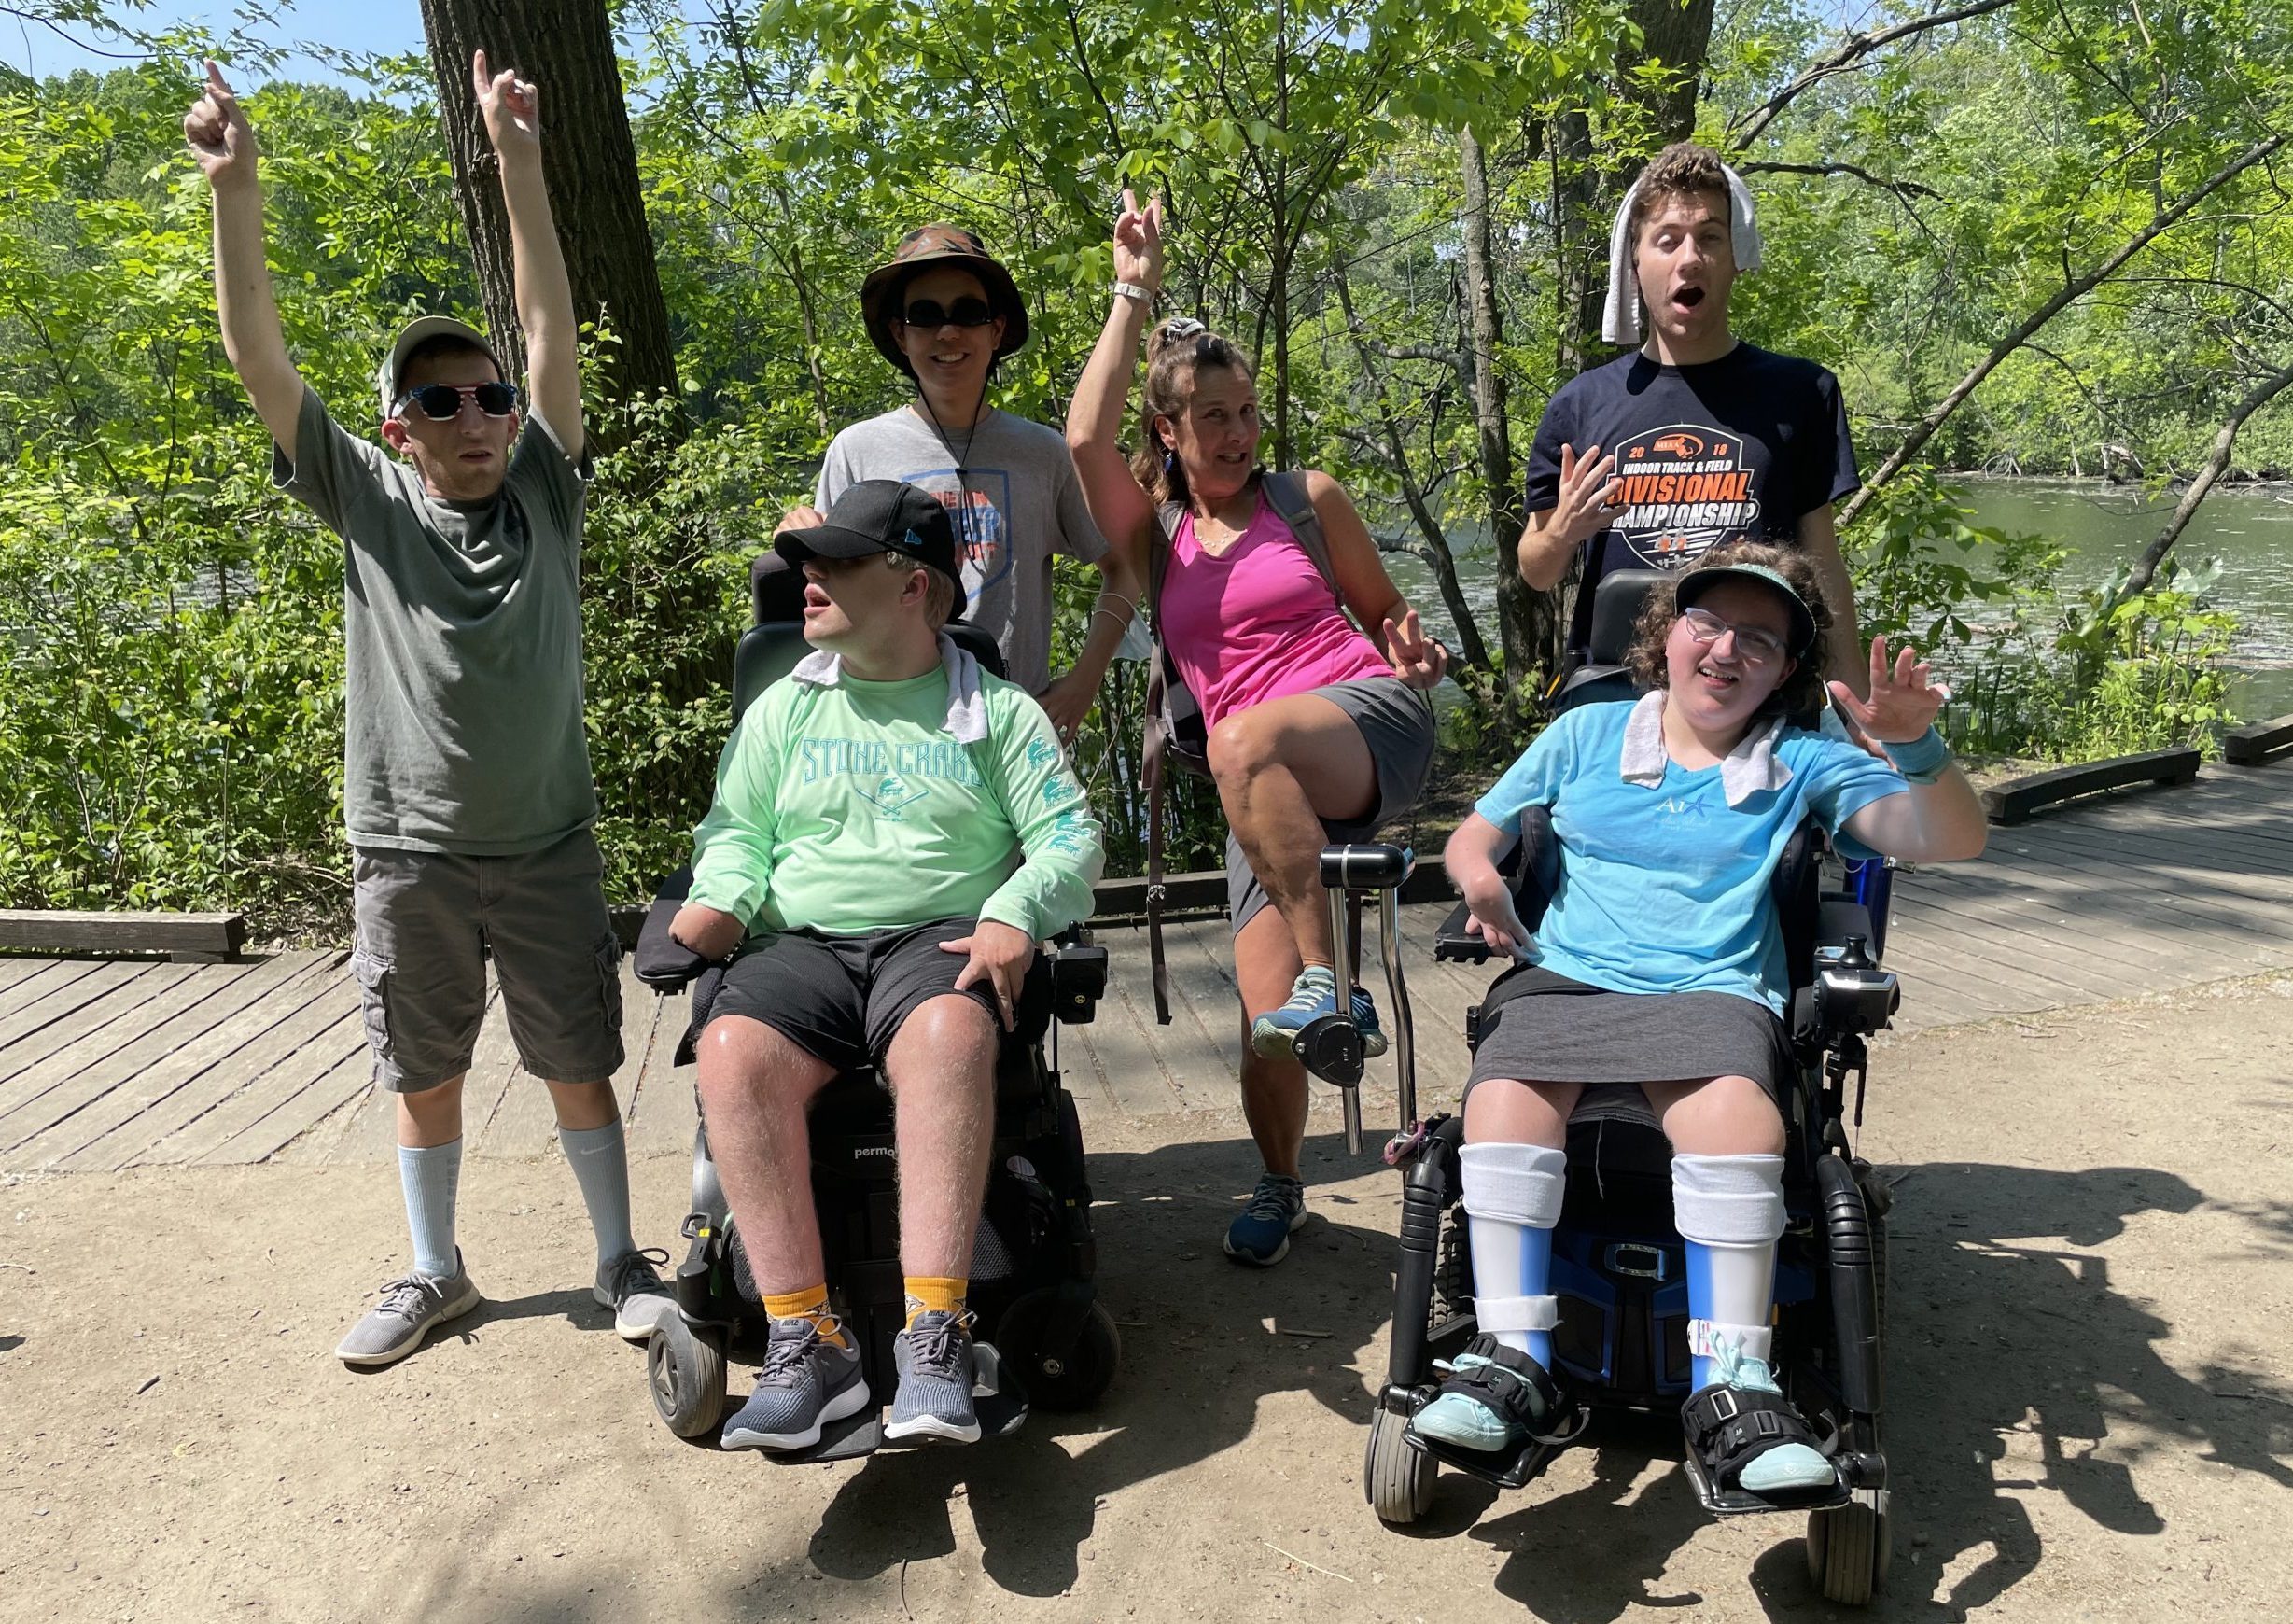 Group of hikers with varying abilities doing wacky poses